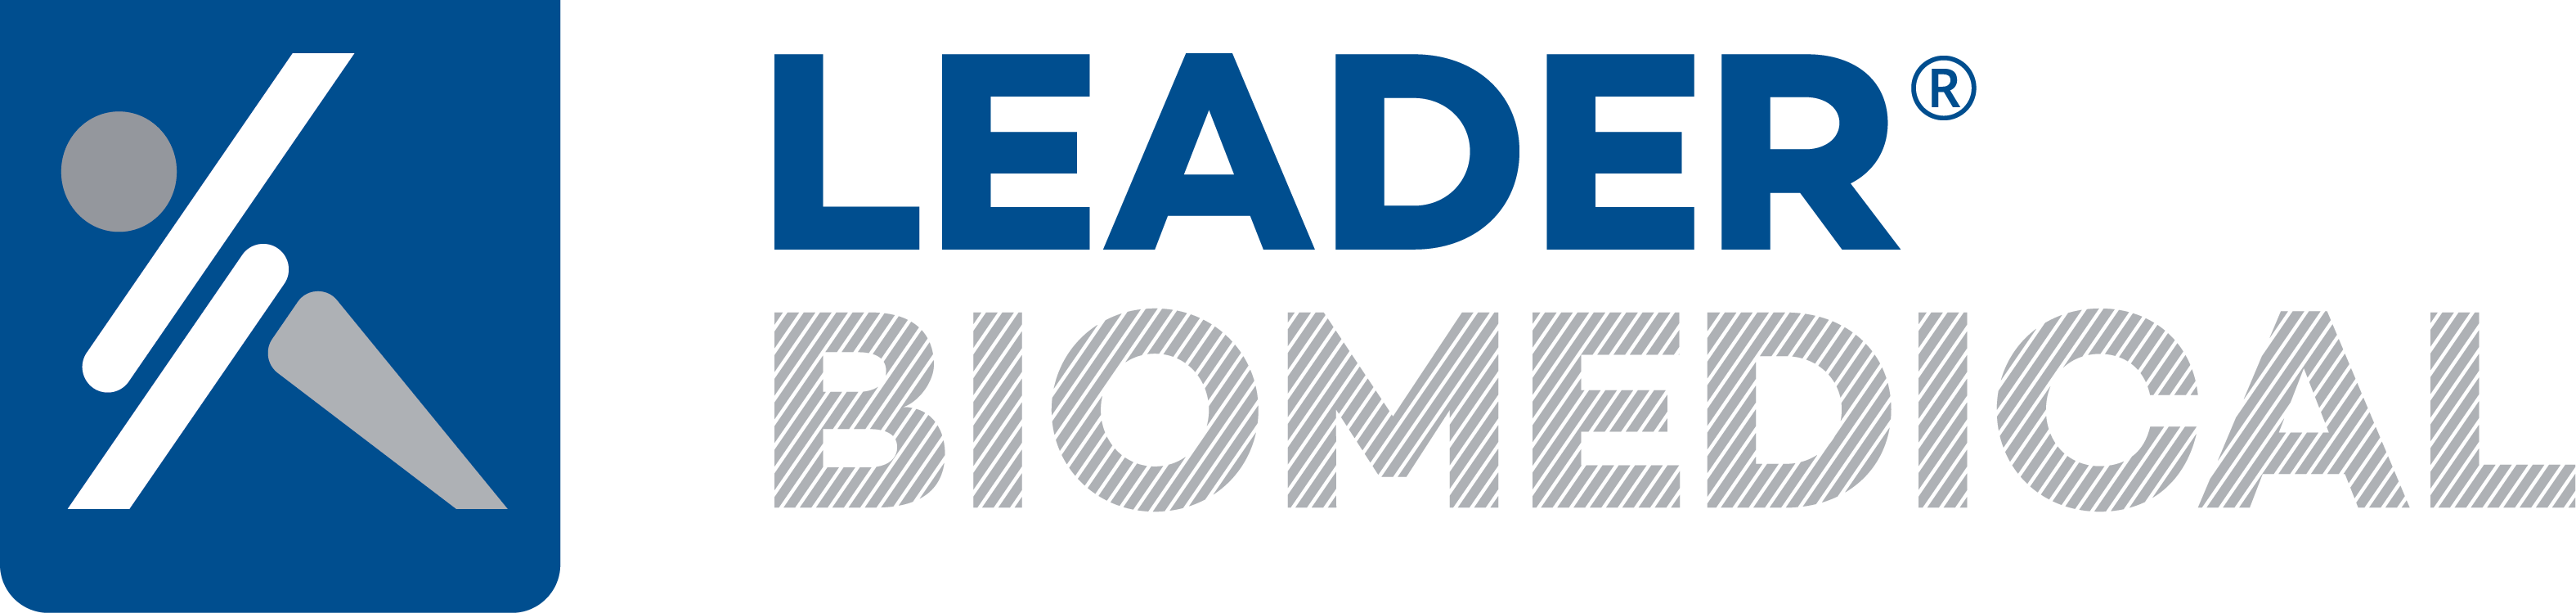 Leader Biomedical- Extending Your Reach with targeted dental